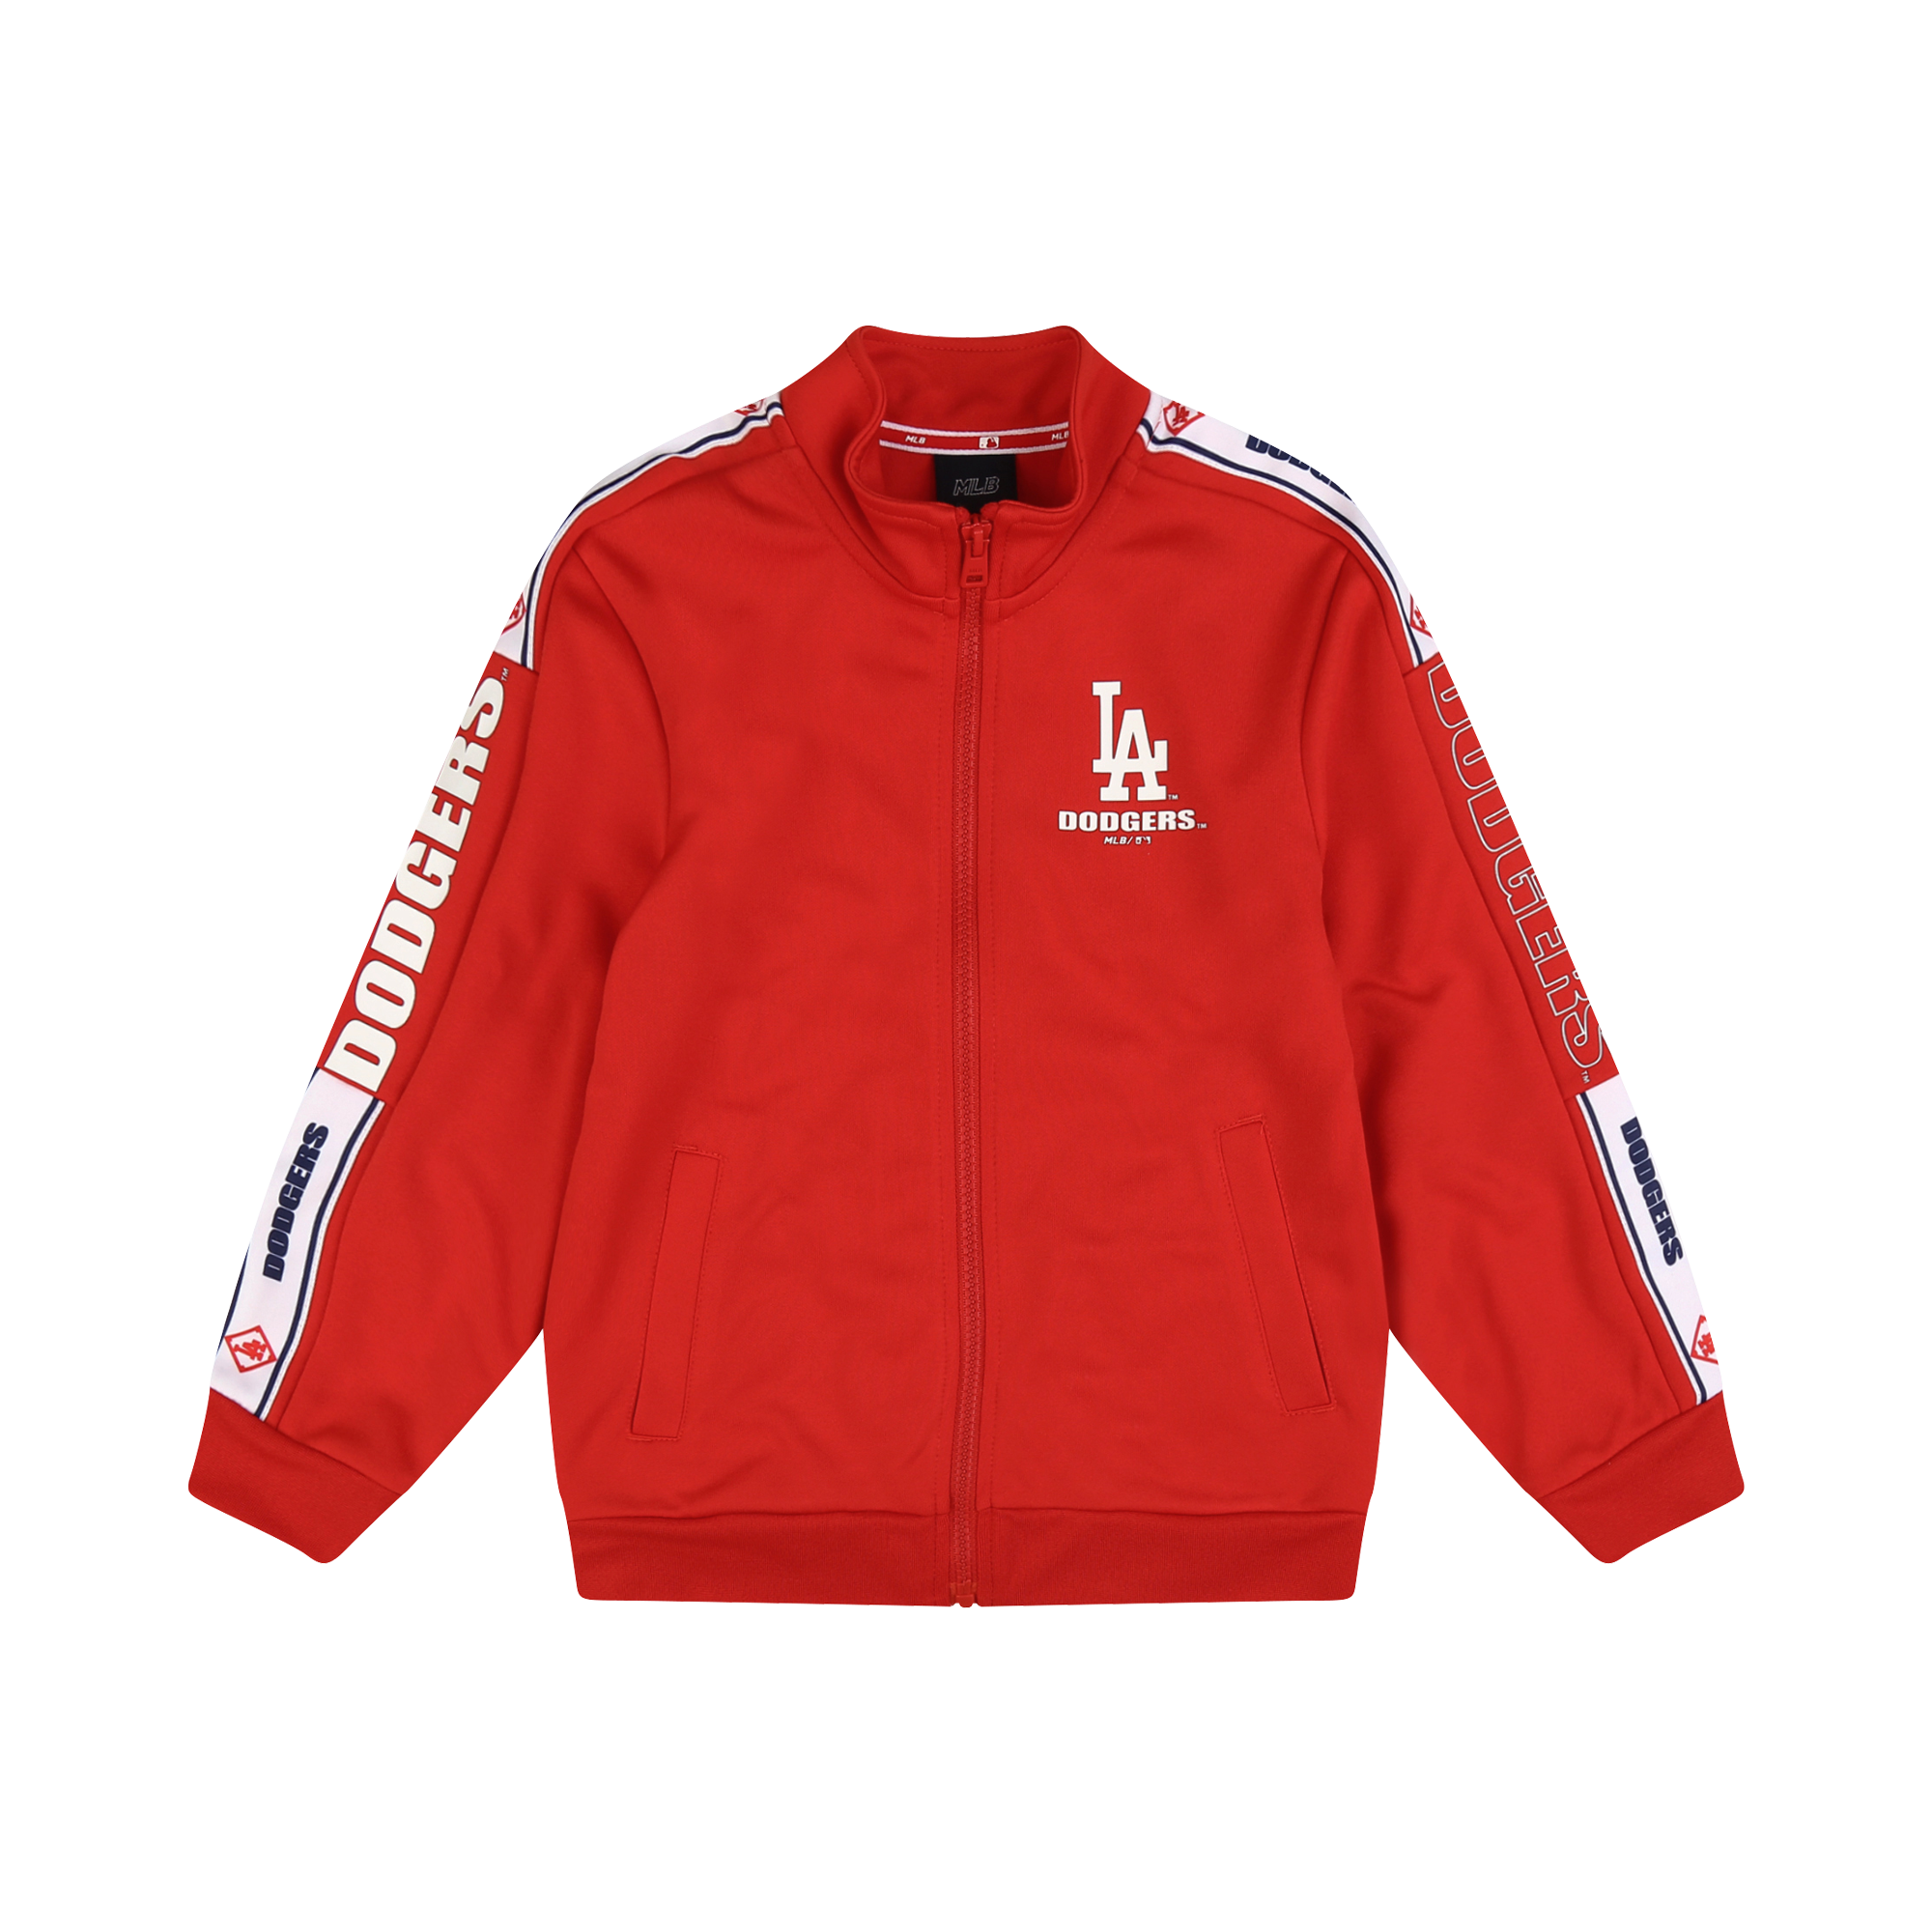 LA DODGERS UNISEX SLEEVE TAPE TRAINING ZIP-UP